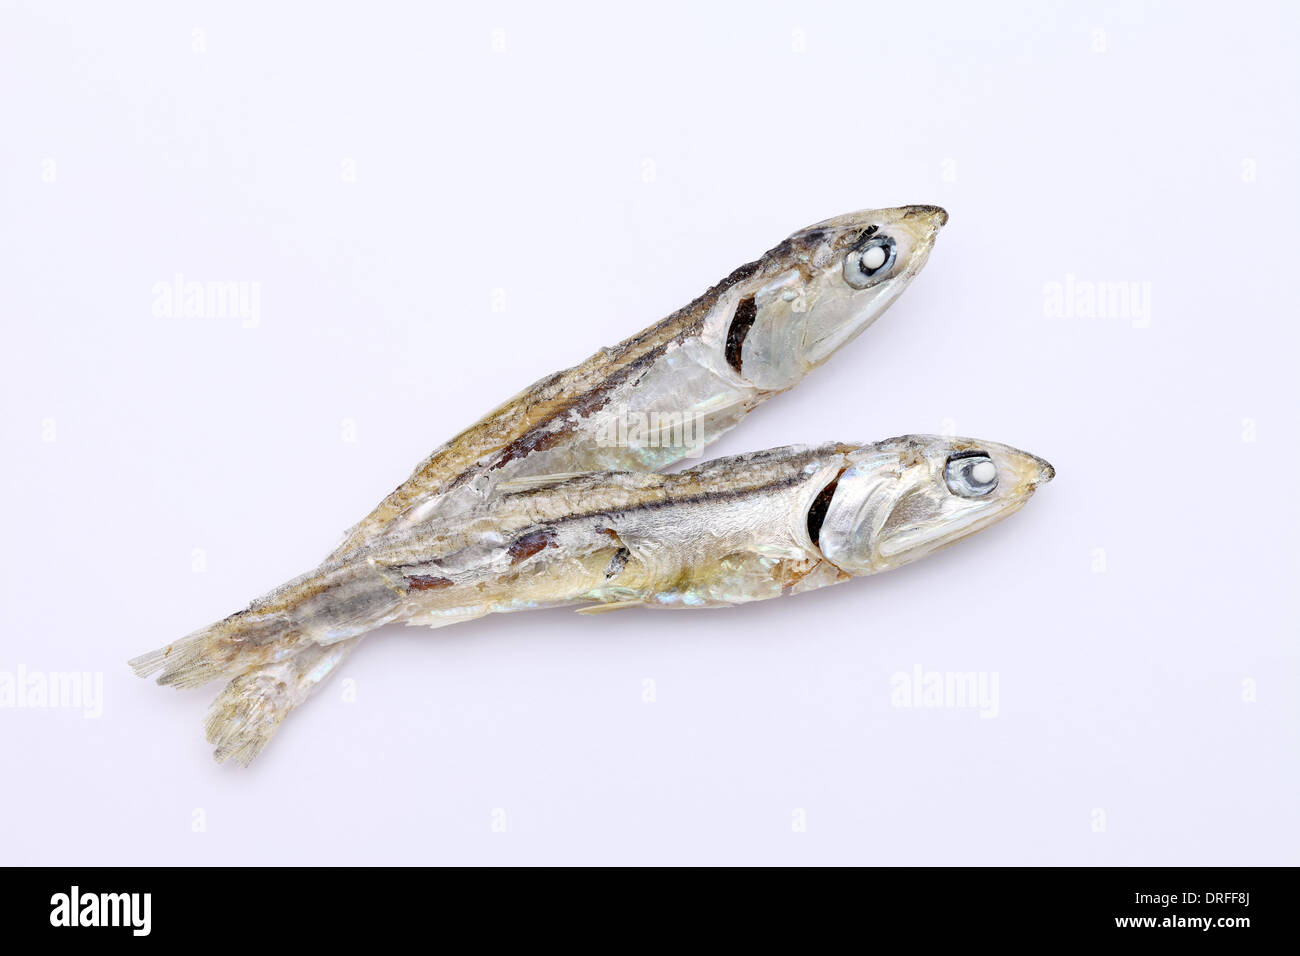 Dried small fish used in japanese cuisine, on white background - Stock Image